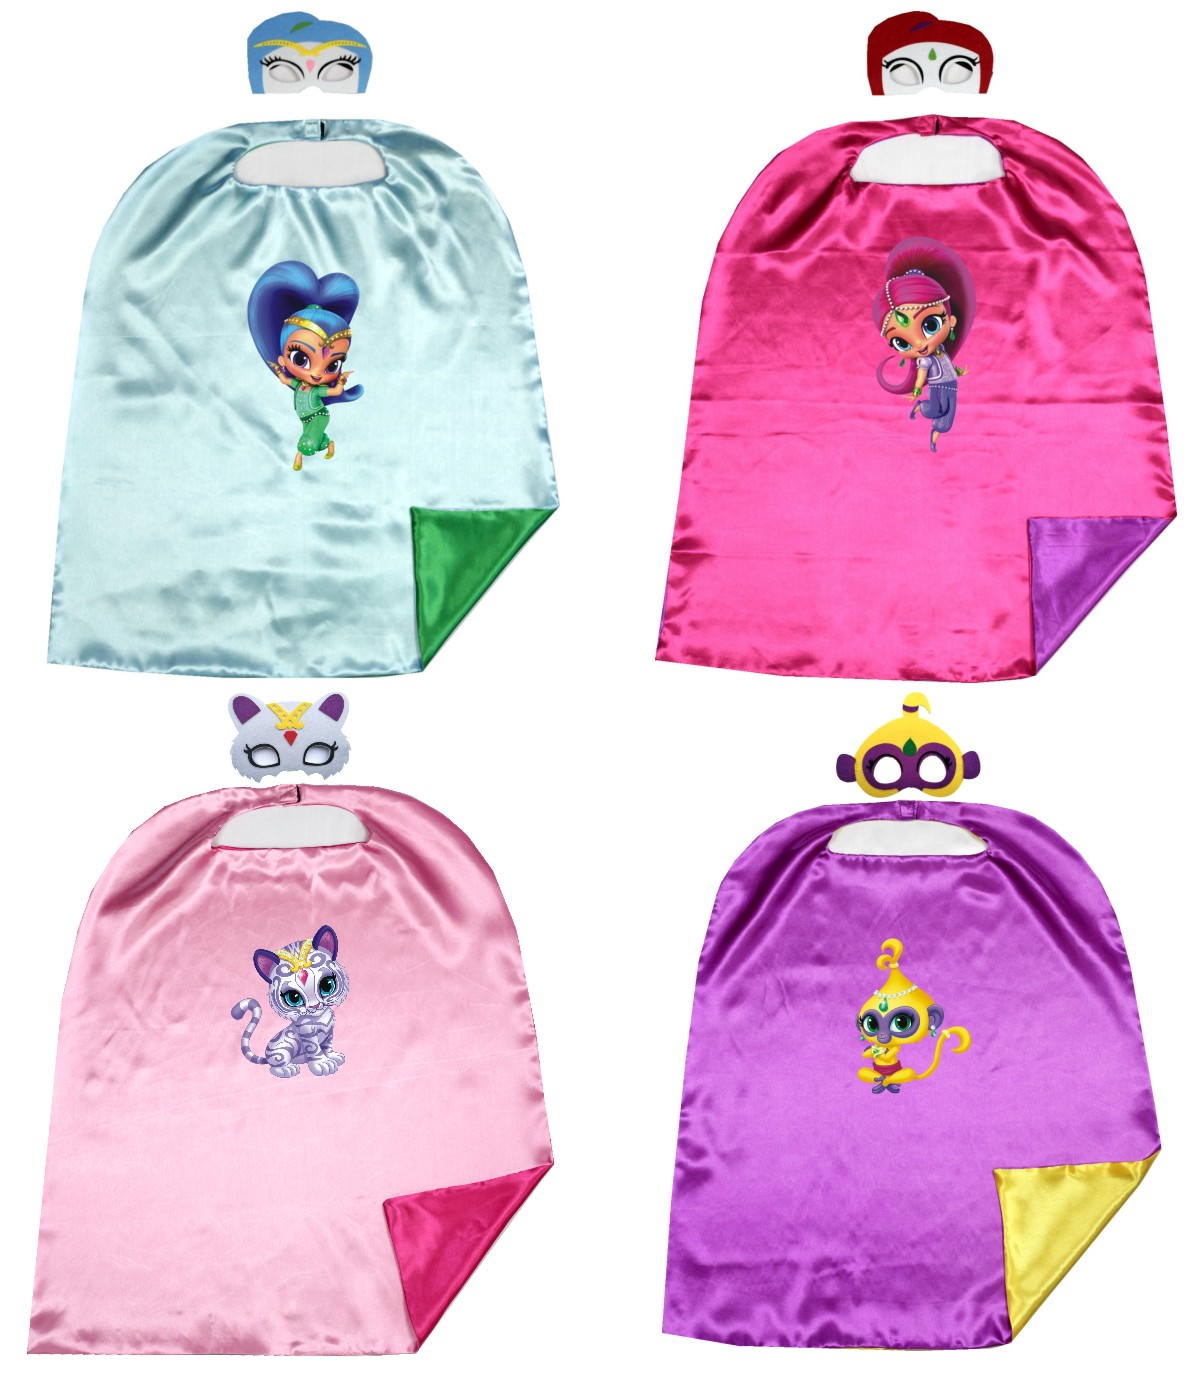 70*80cm 2layer shimmer & shine Capes matching masks  BirthdayParty Favor Inspired Dress Up Capes + Masks